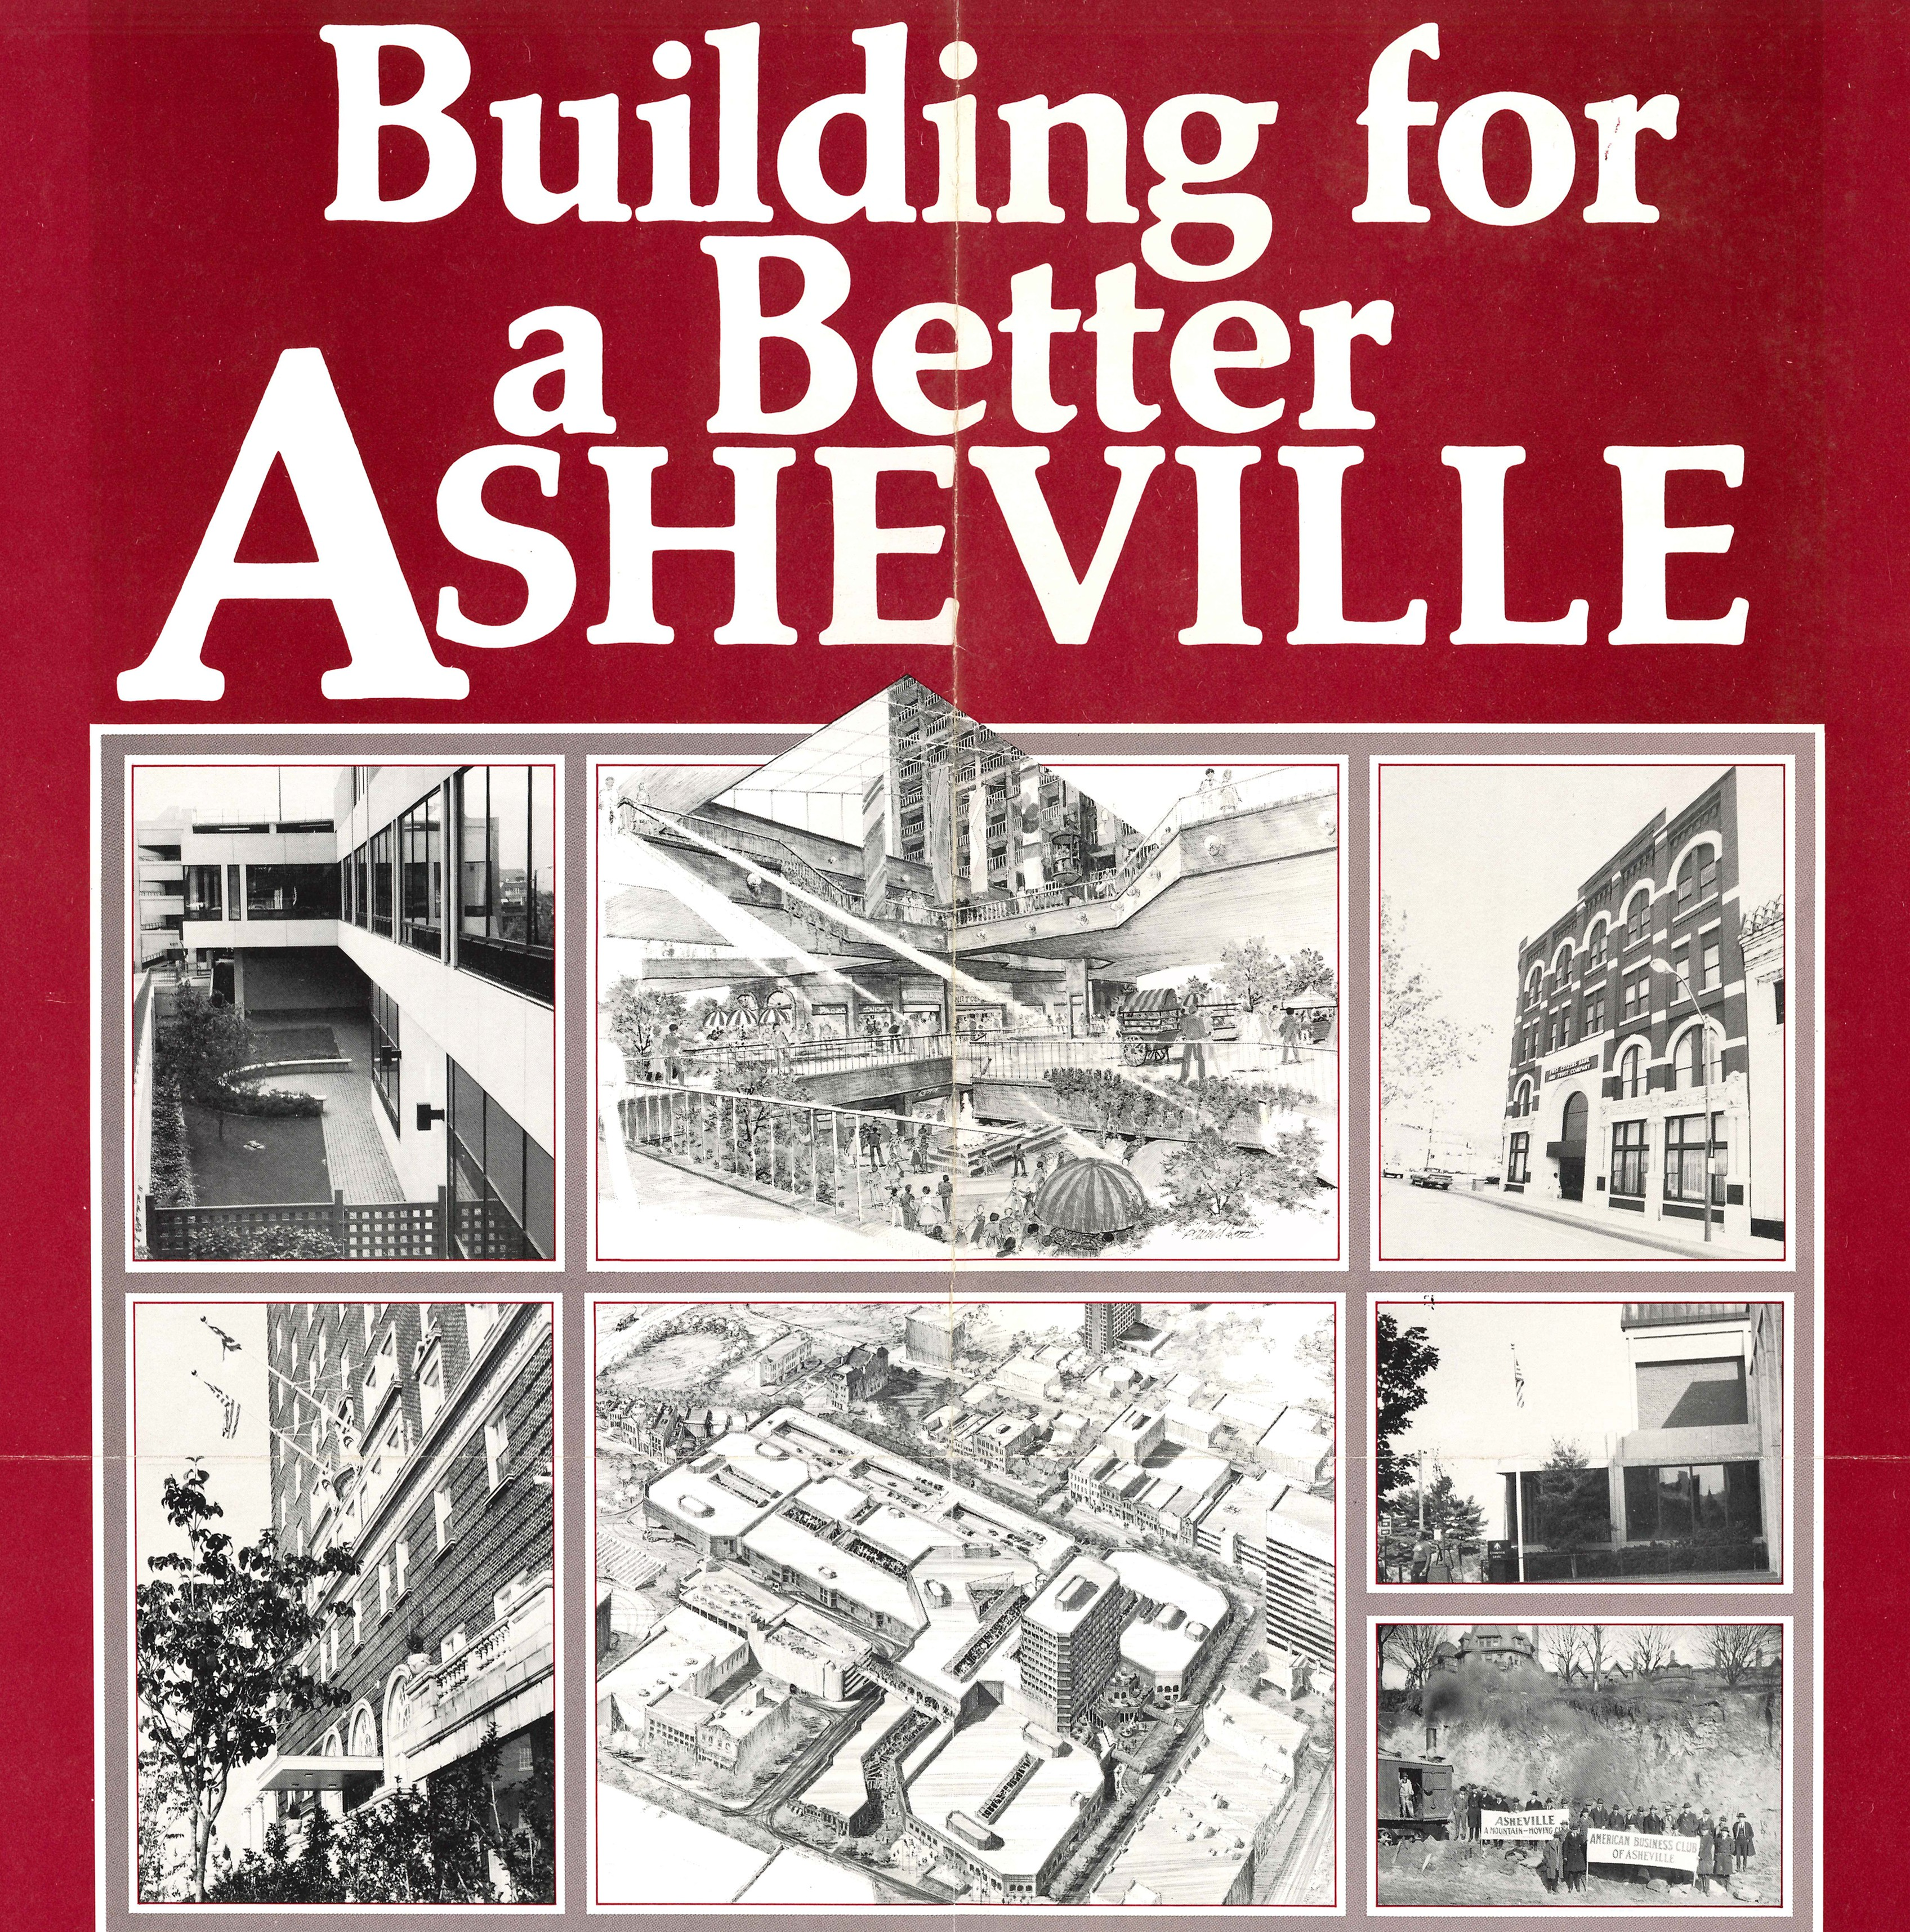 The Downtown Mall Proposal | Downtown Asheville Mall Project on